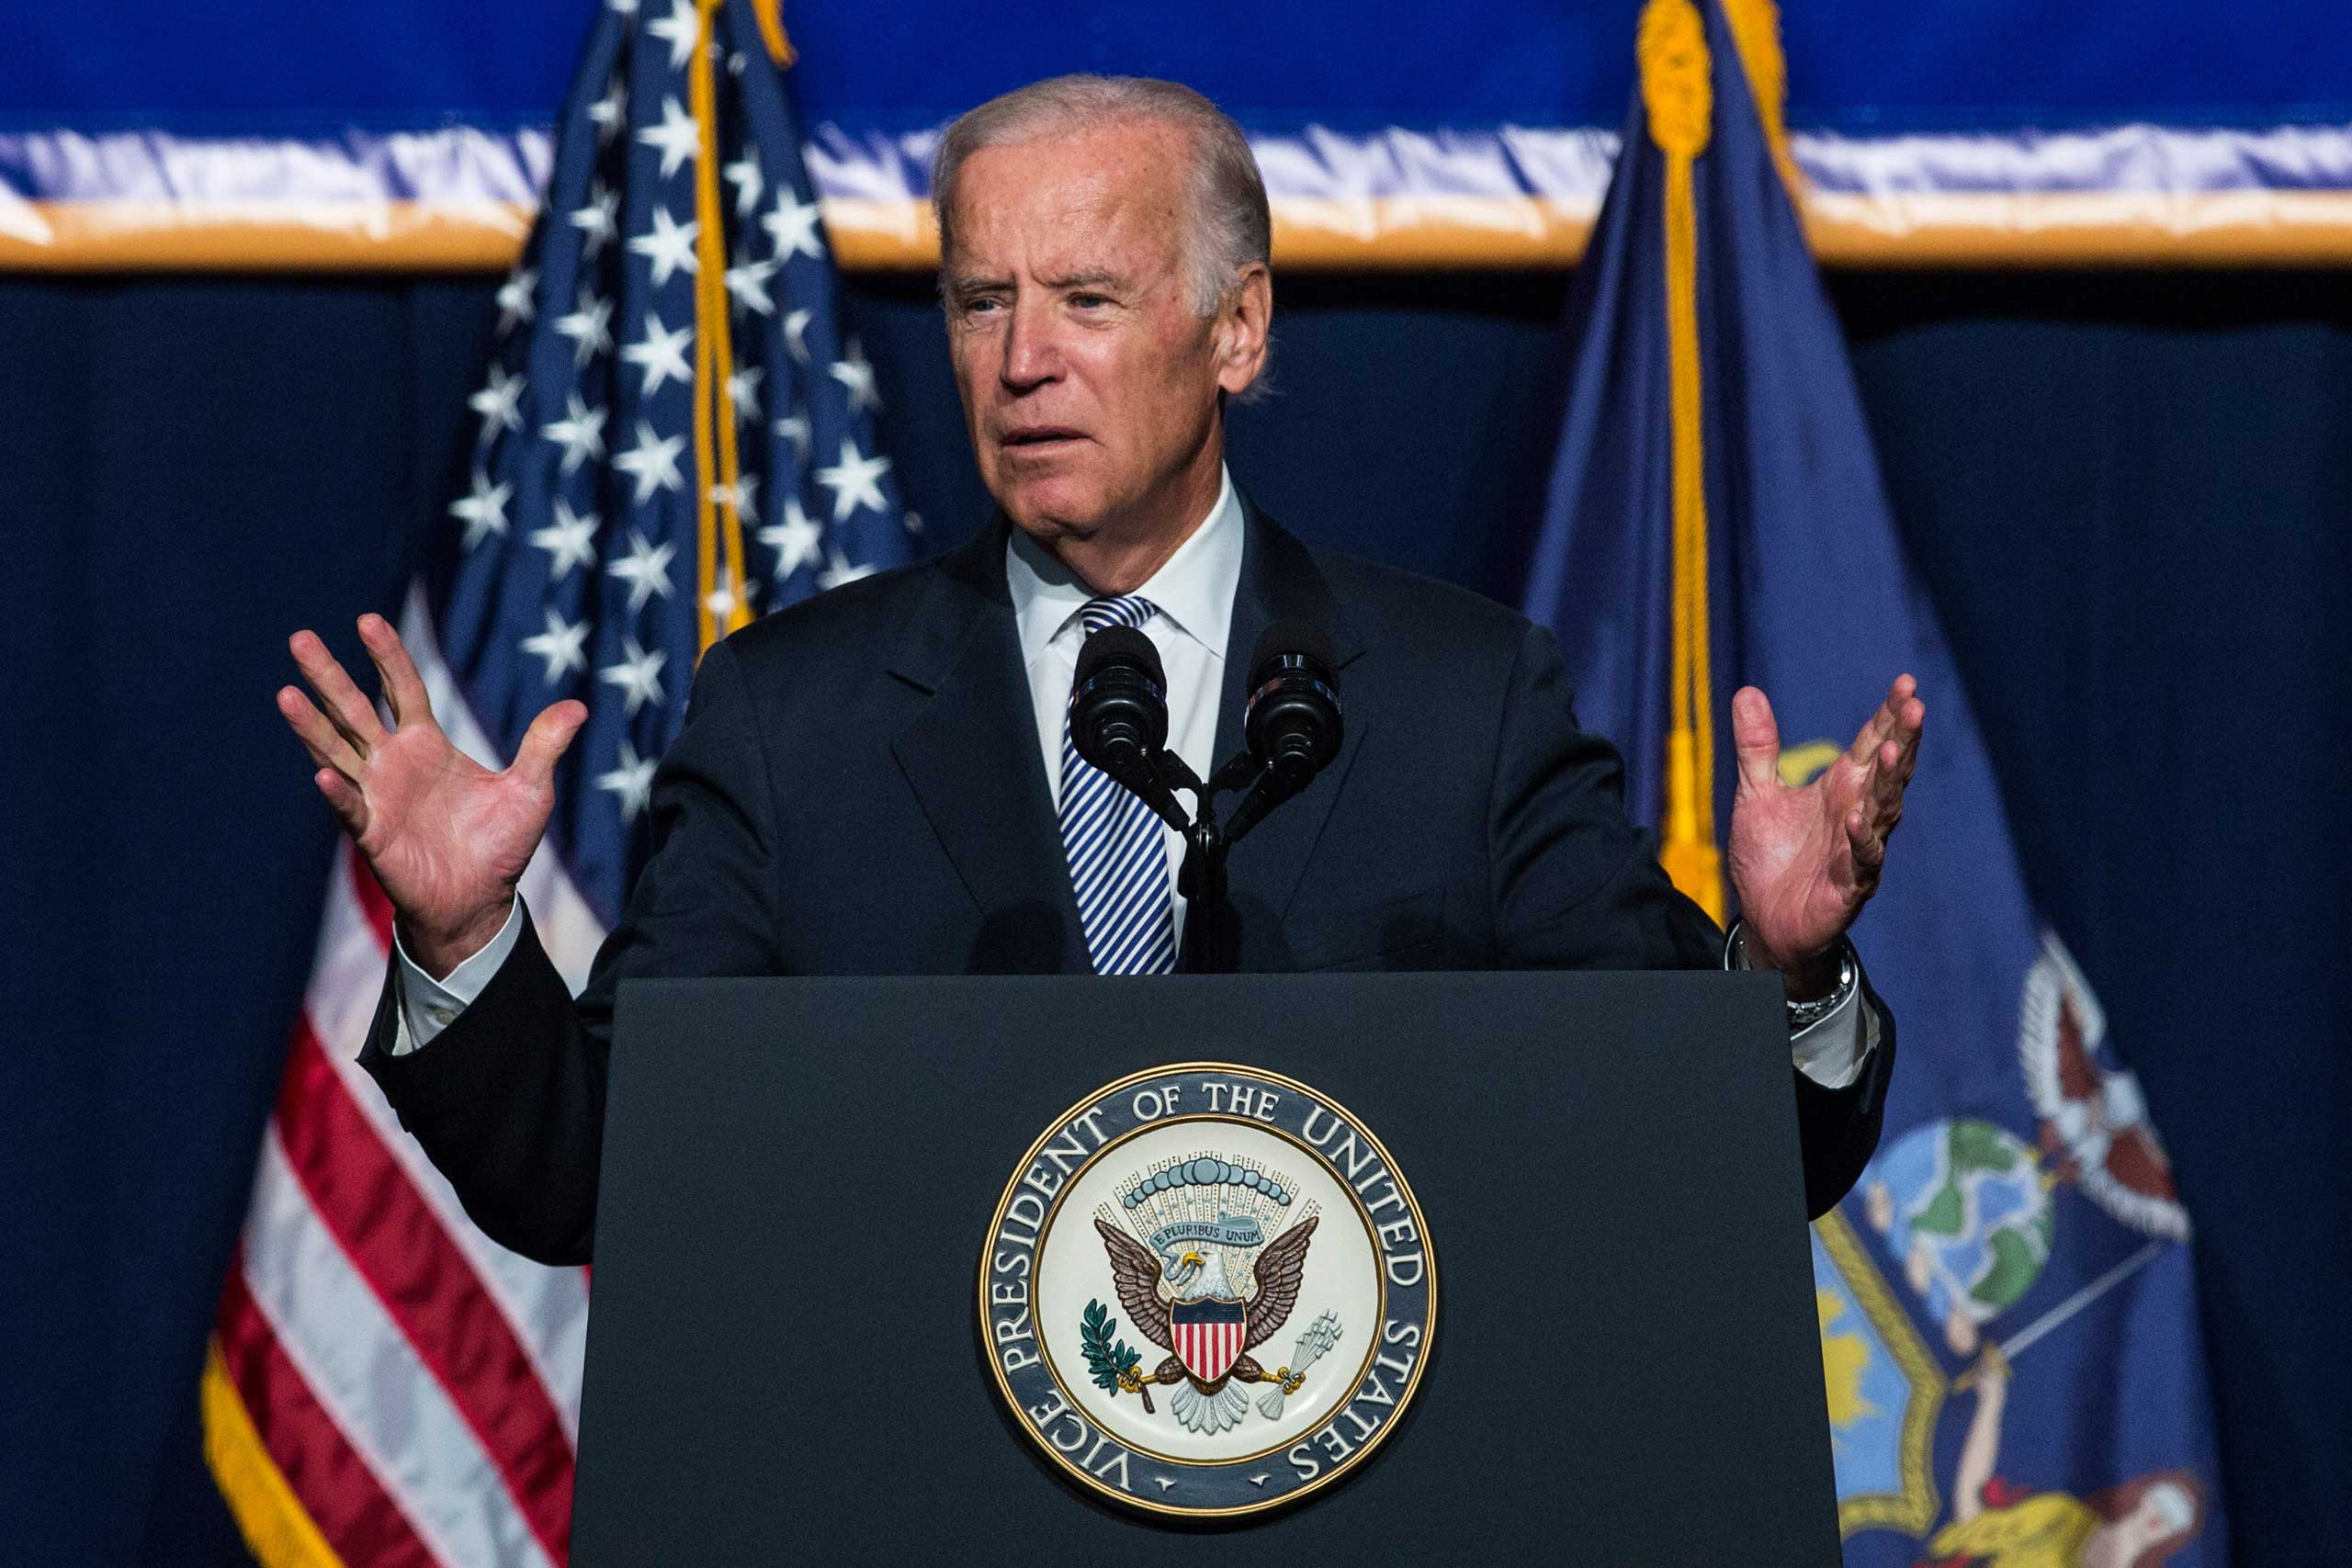 U.S. Vice President Joe Biden speaks in support of raising the minimum wage for the state of New York to $15 per hour in New York City, on Sept. 10, 2015